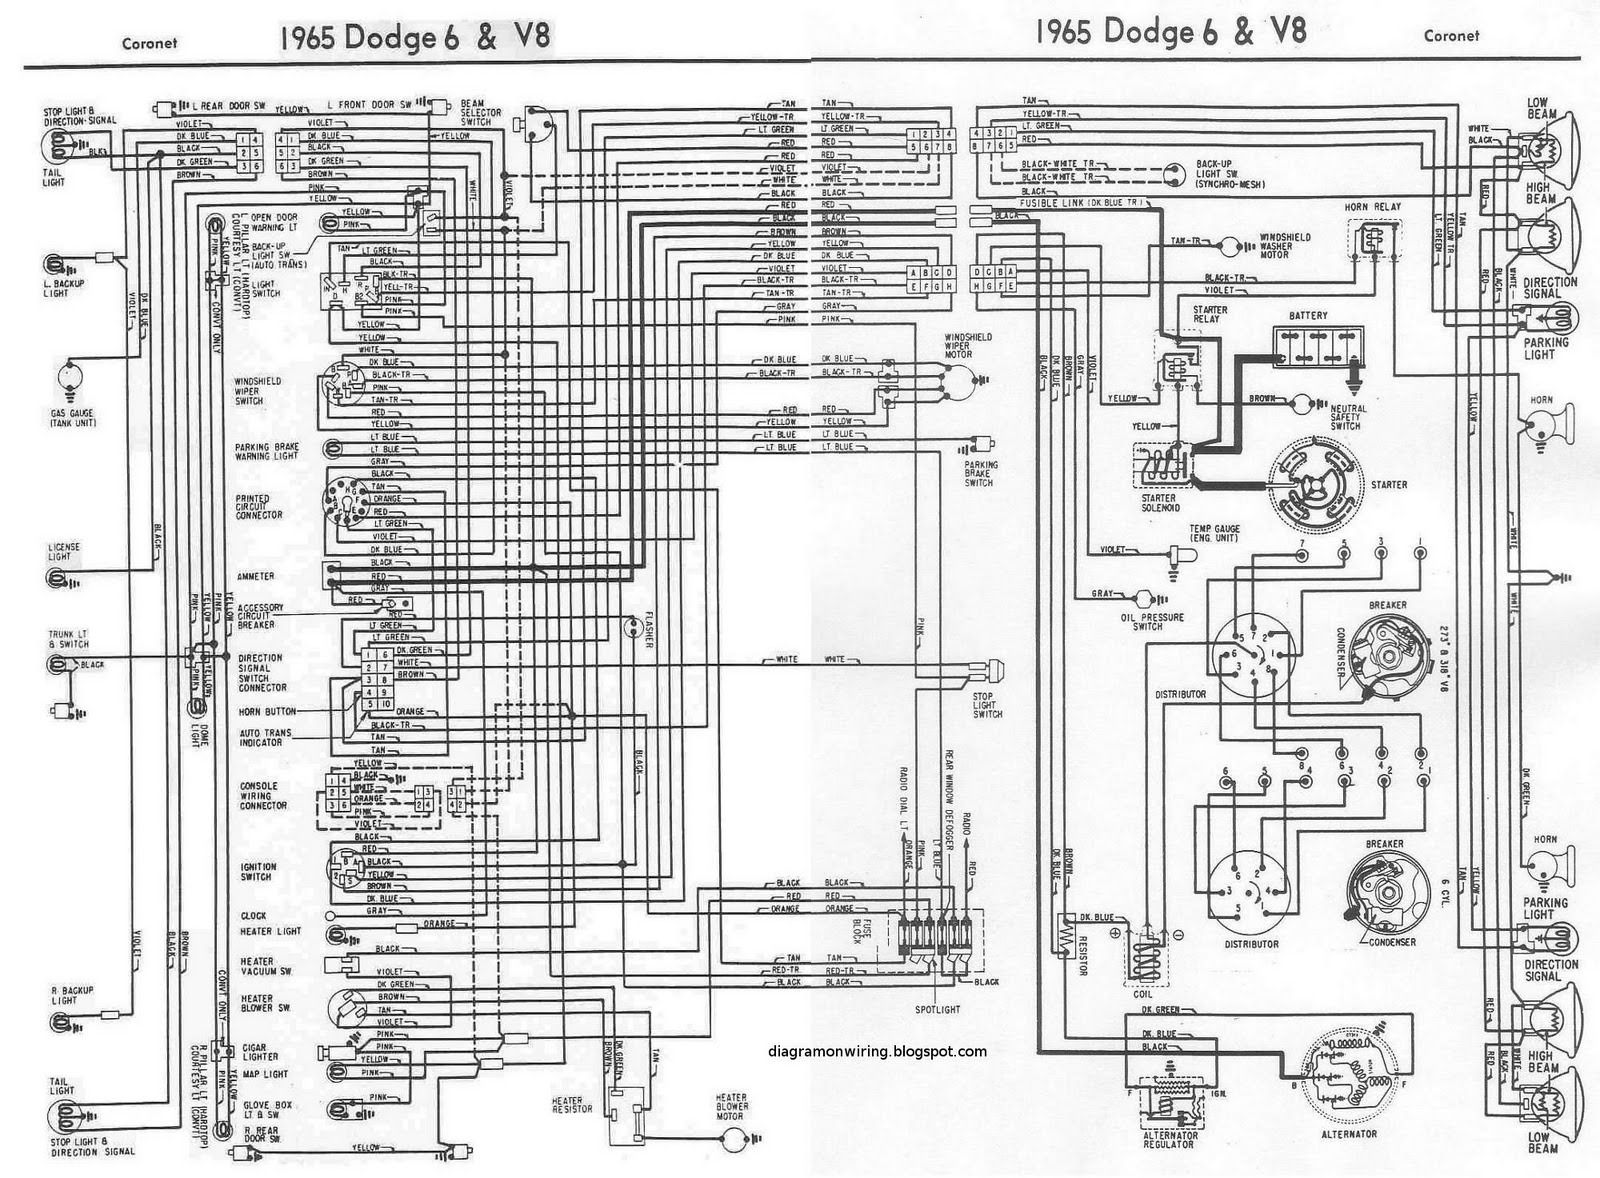 hight resolution of 1967 dodge alternator wiring wiring diagram repair guides1966 plymouth alternator wiring electrical wiring diagram1967 dodge alternator